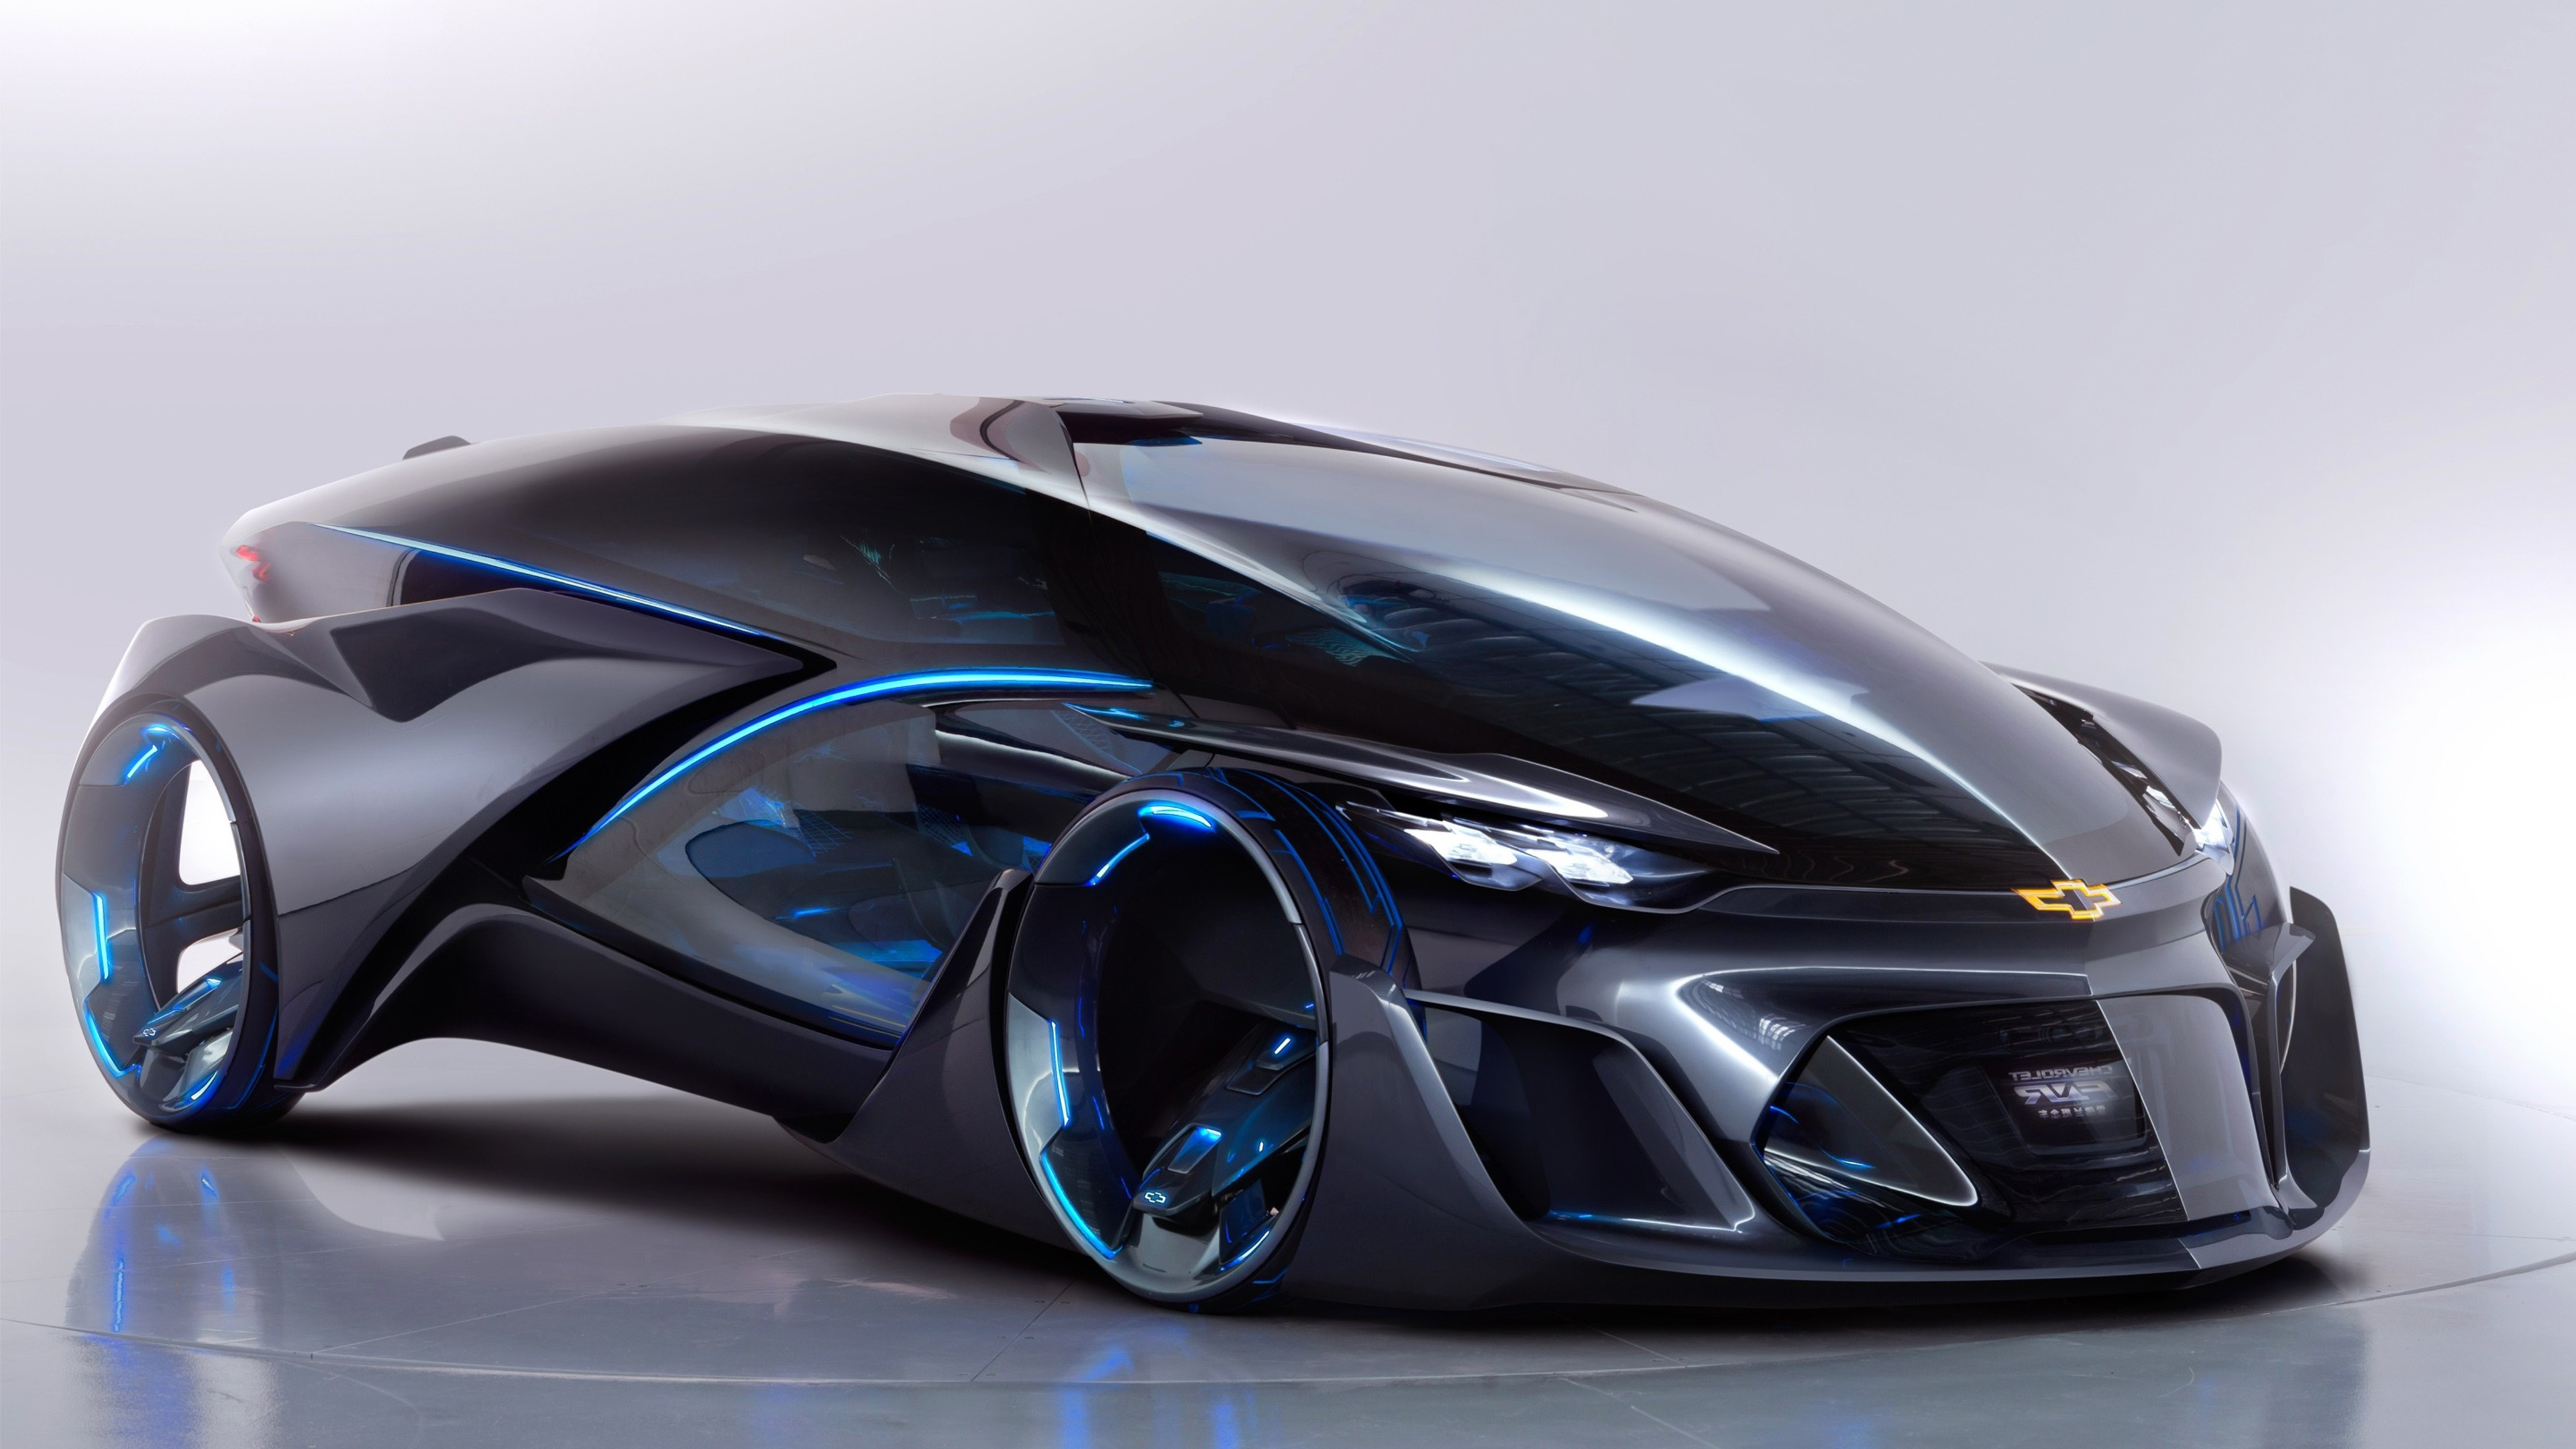 2048x1152 Chevrolet FNR Concept Car 2048x1152 Resolution ...